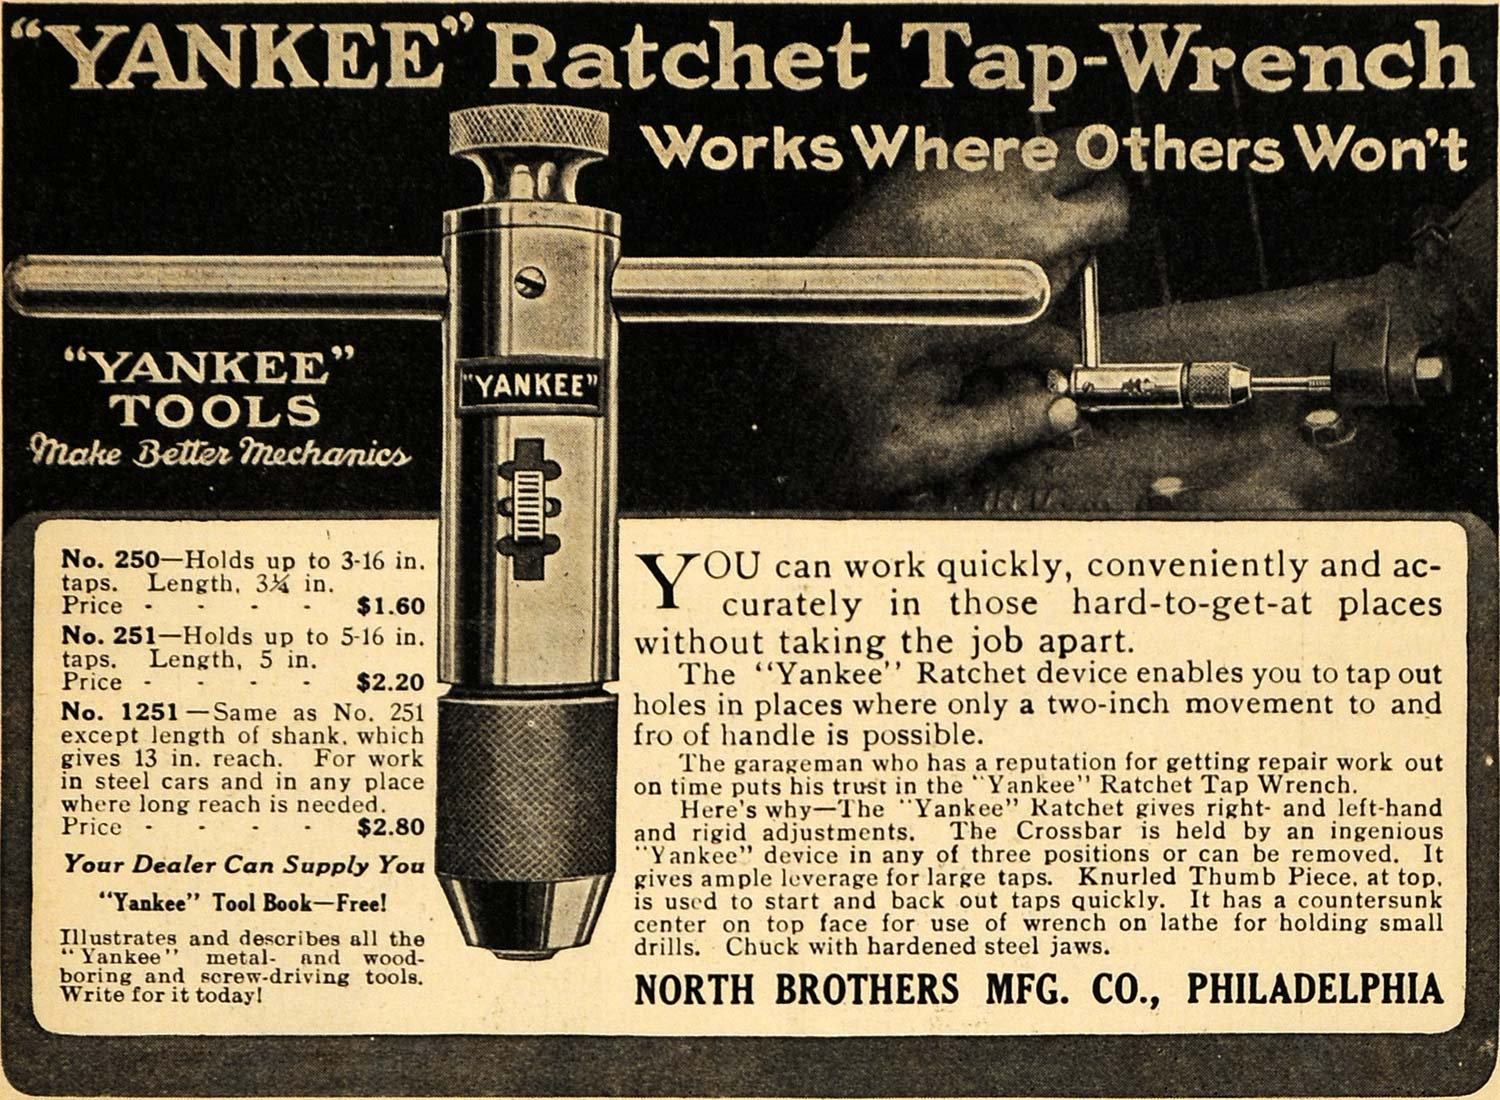 1917 Ad North Bros Yankee Ratchet Tap-Wrench Models WWI - ORIGINAL ILW1